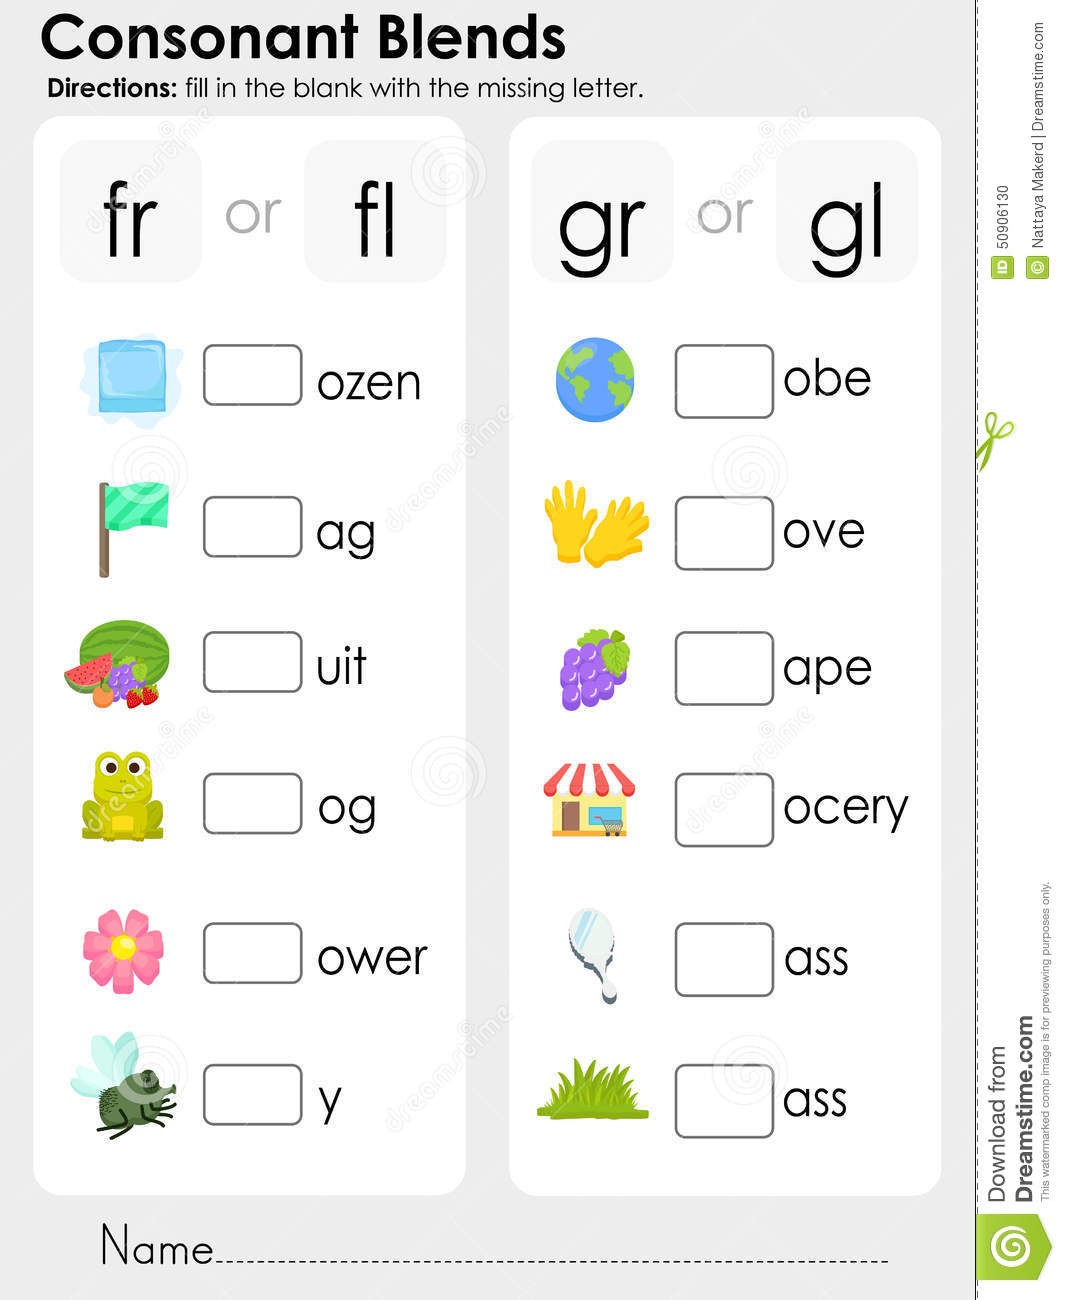 Worksheets Consonant Blends Worksheets consonant blends worksheet free worksheets library download and worksheet